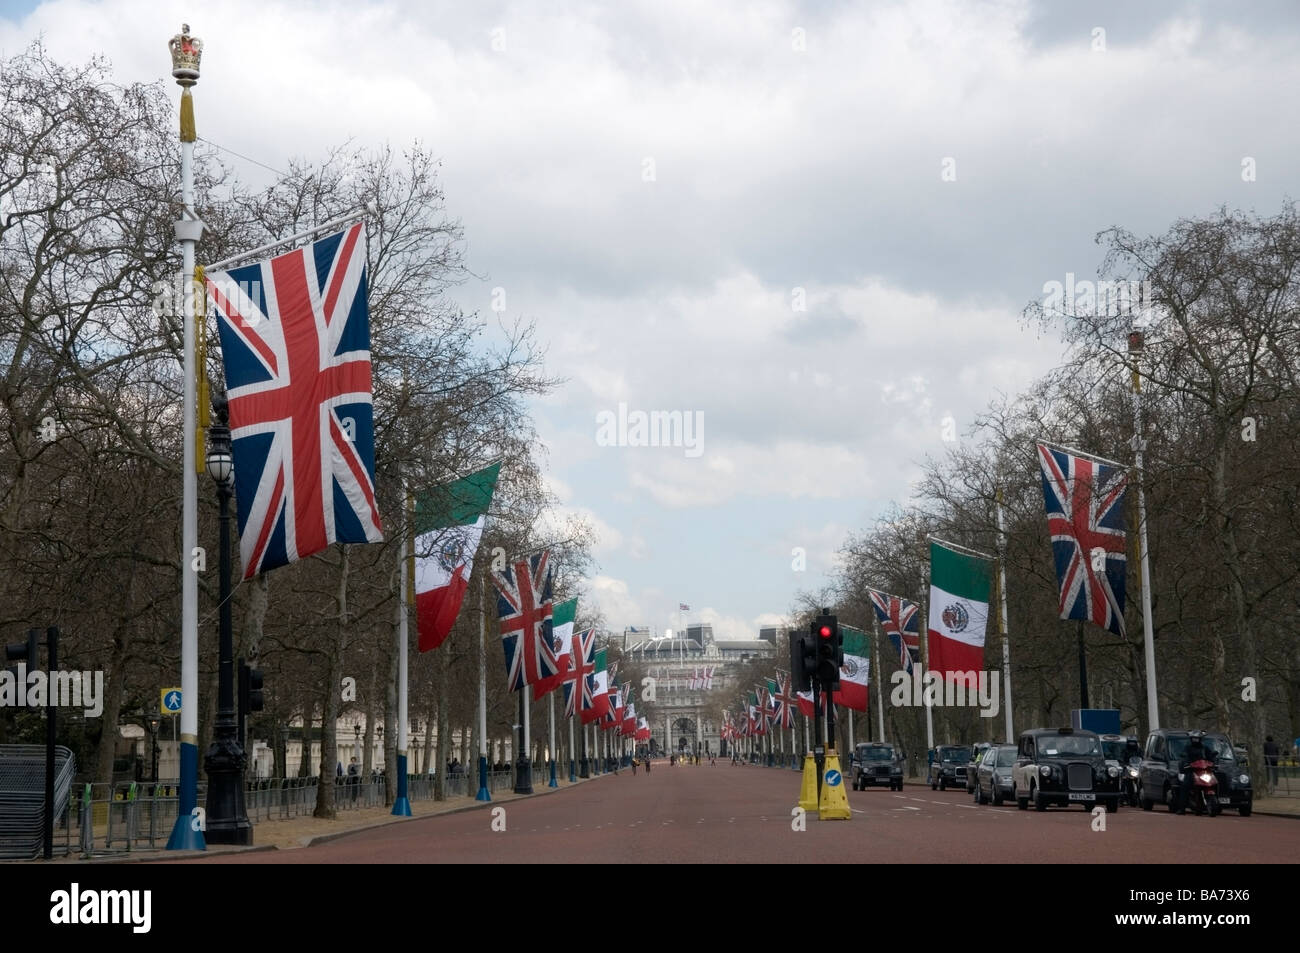 Pall Mall dressed-up with flags for the G20 summit in London City, Union Jack, April 2009, UK, Europe, EU - Stock Image